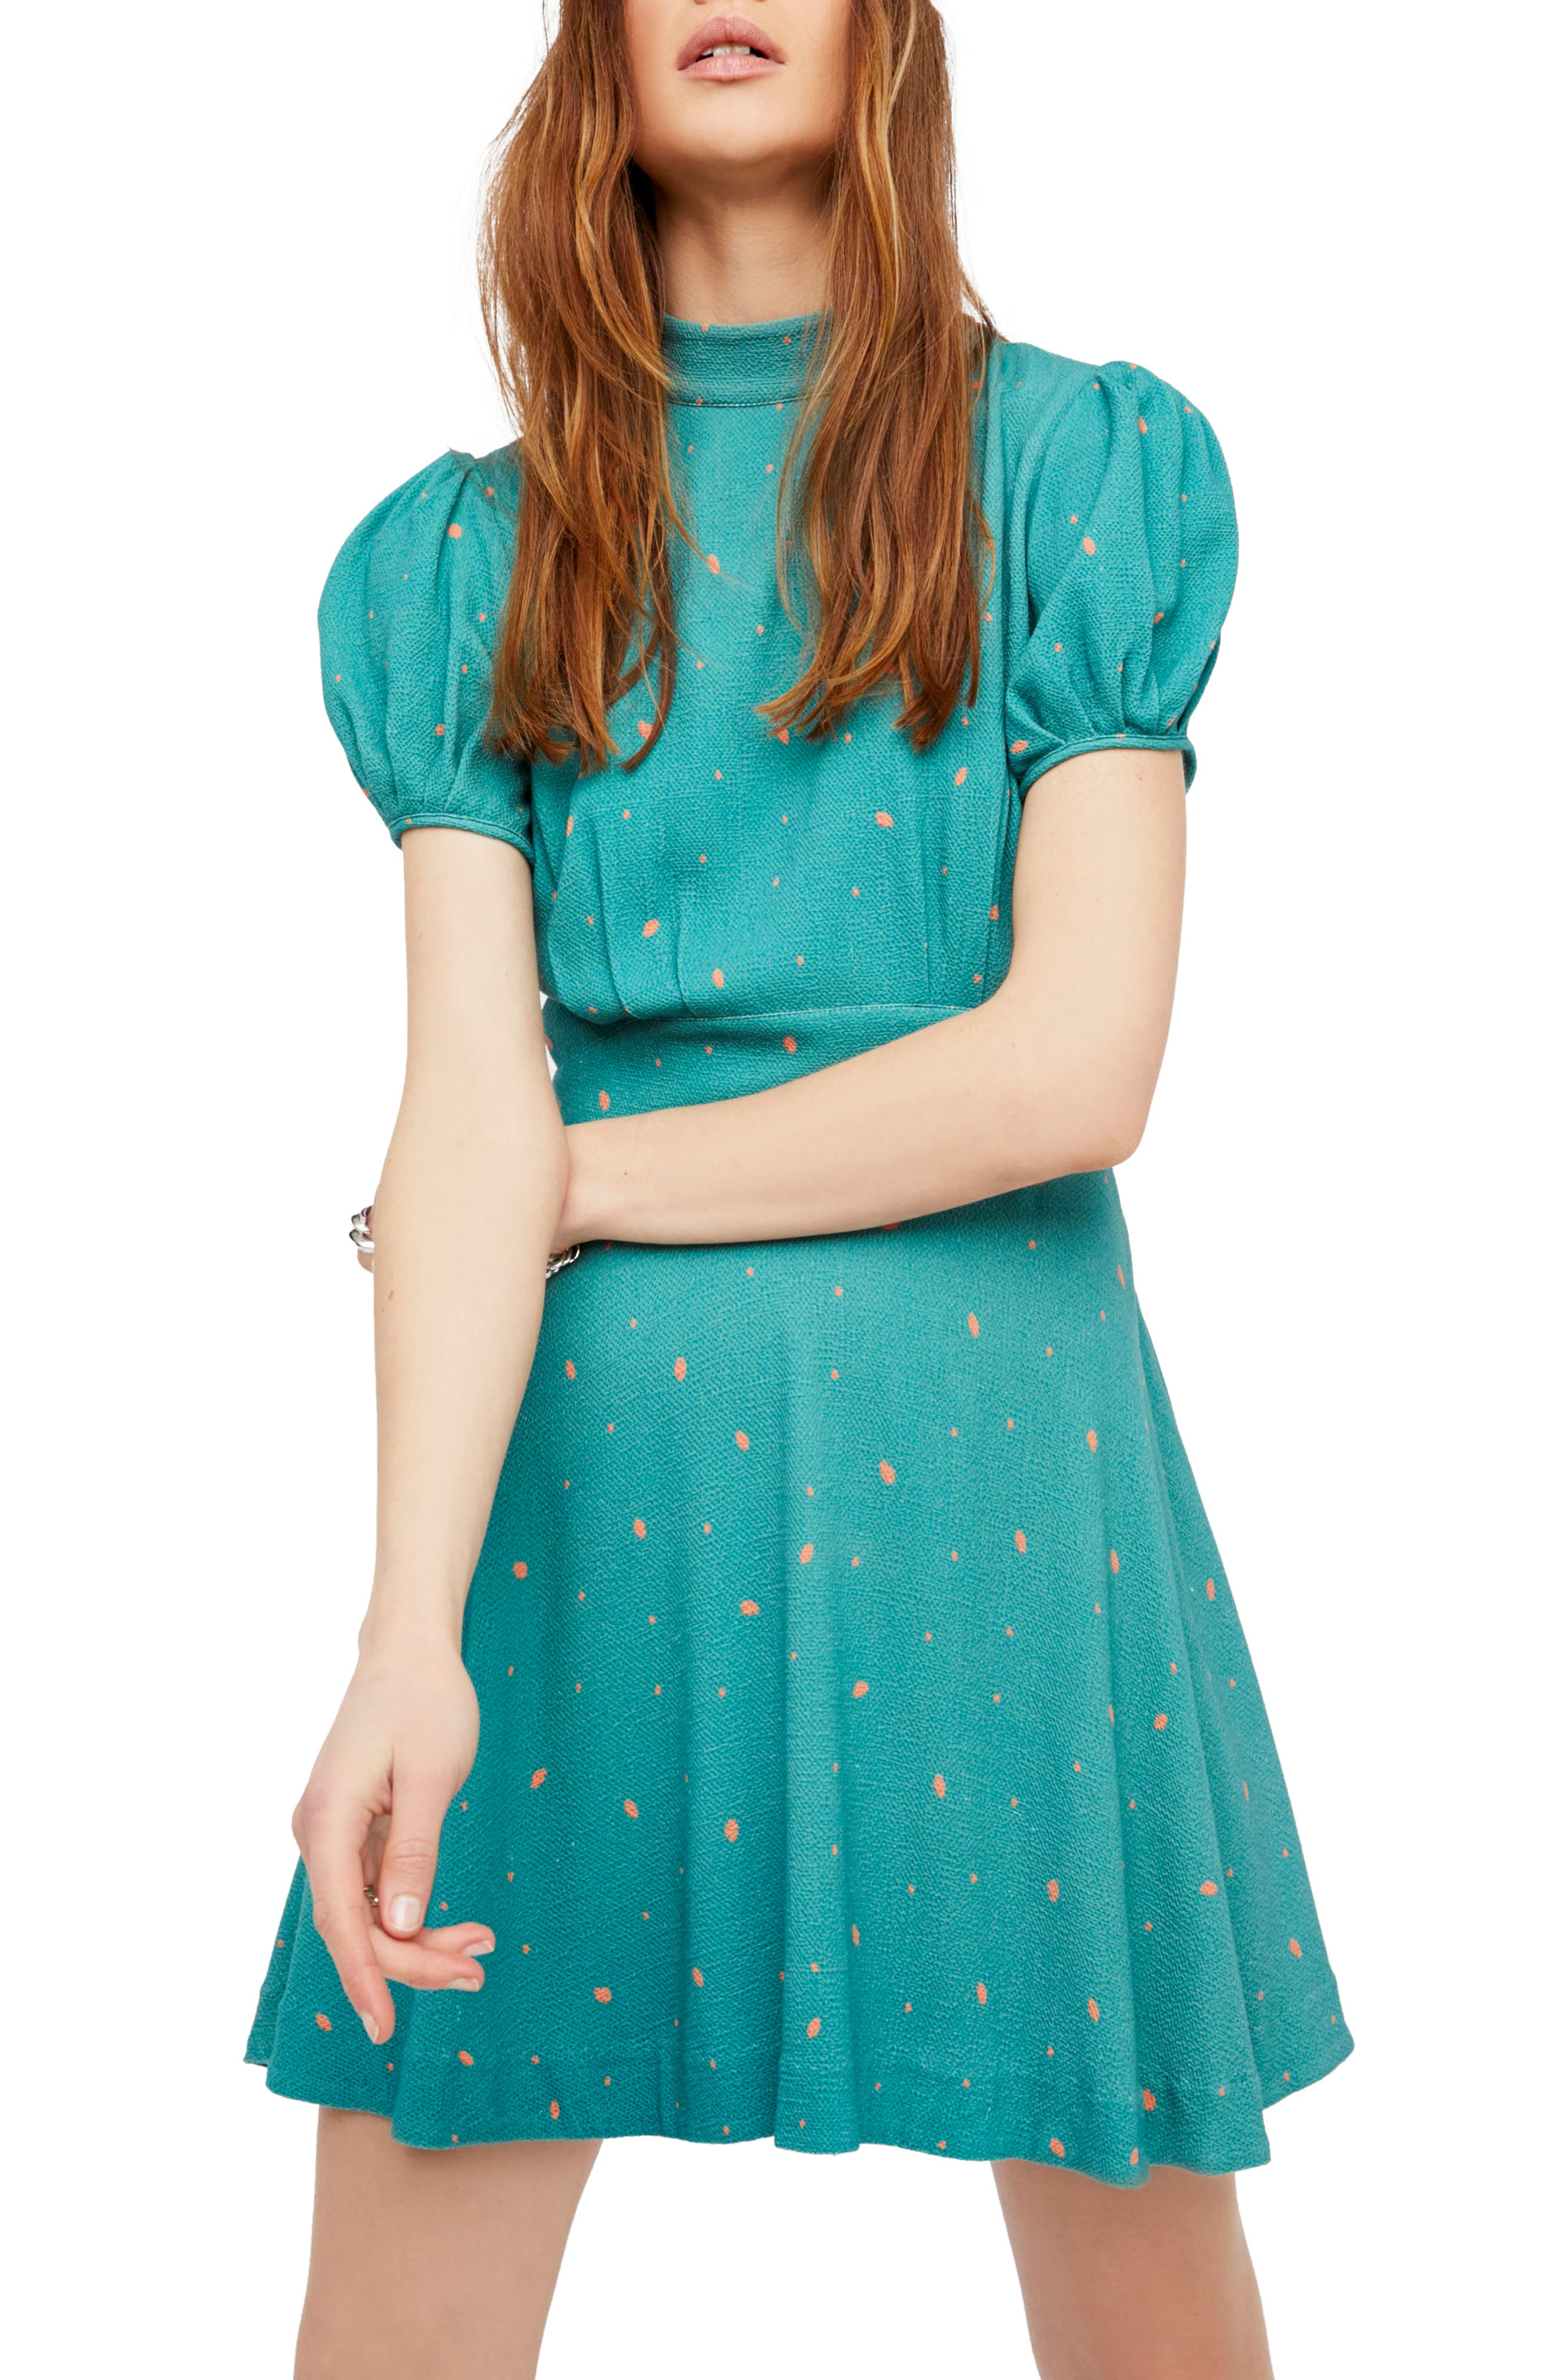 Free People Abbie Fit & Flare Dress